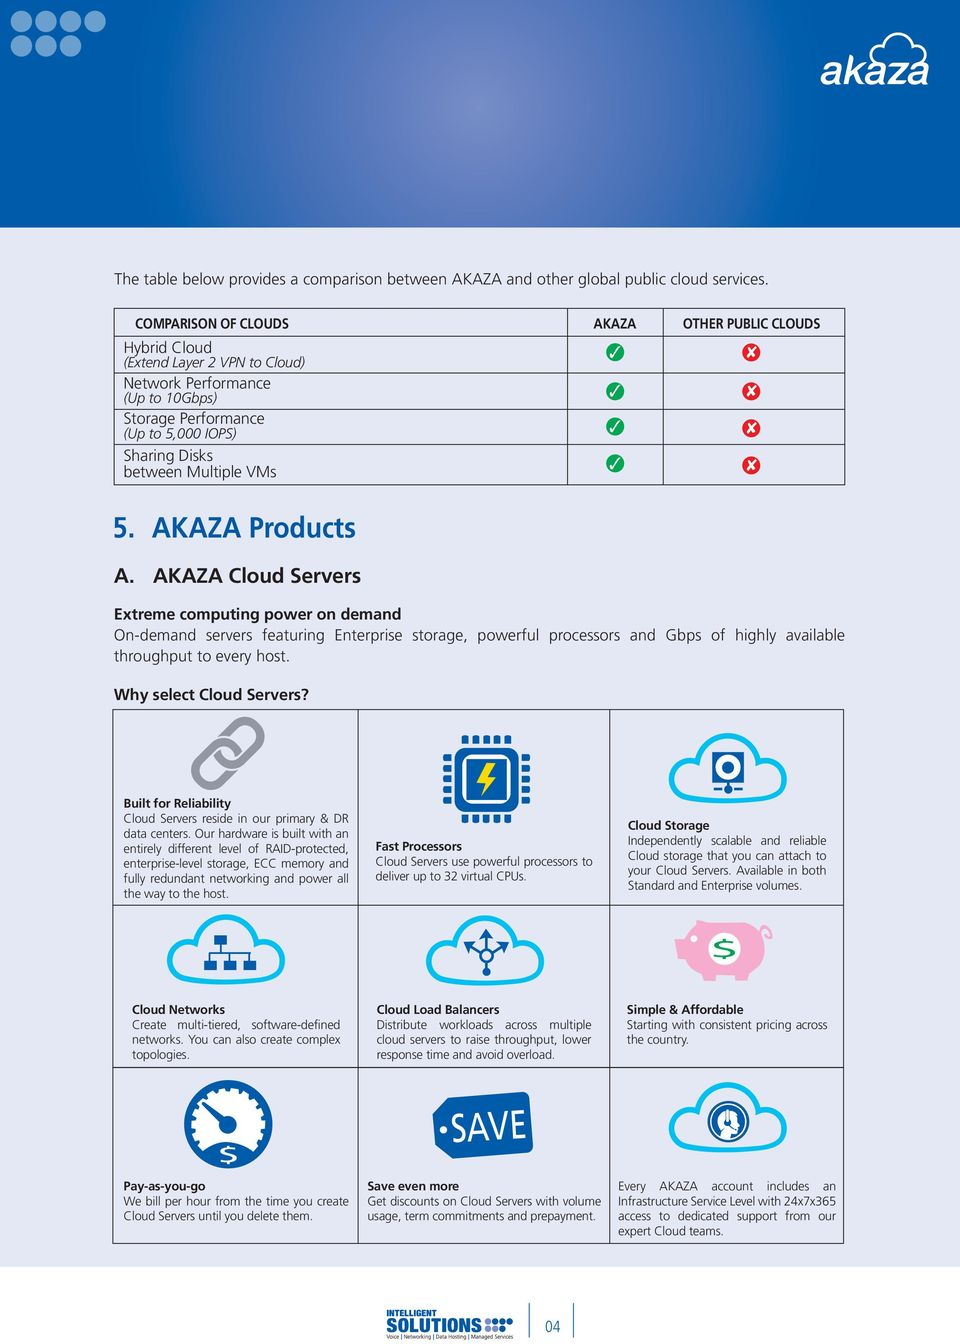 5. AKAZA Products A. AKAZA Cloud Servers Extreme computing power on demand On-demand servers featuring Enterprise storage, powerful processors and Gbps of highly available throughput to every host.